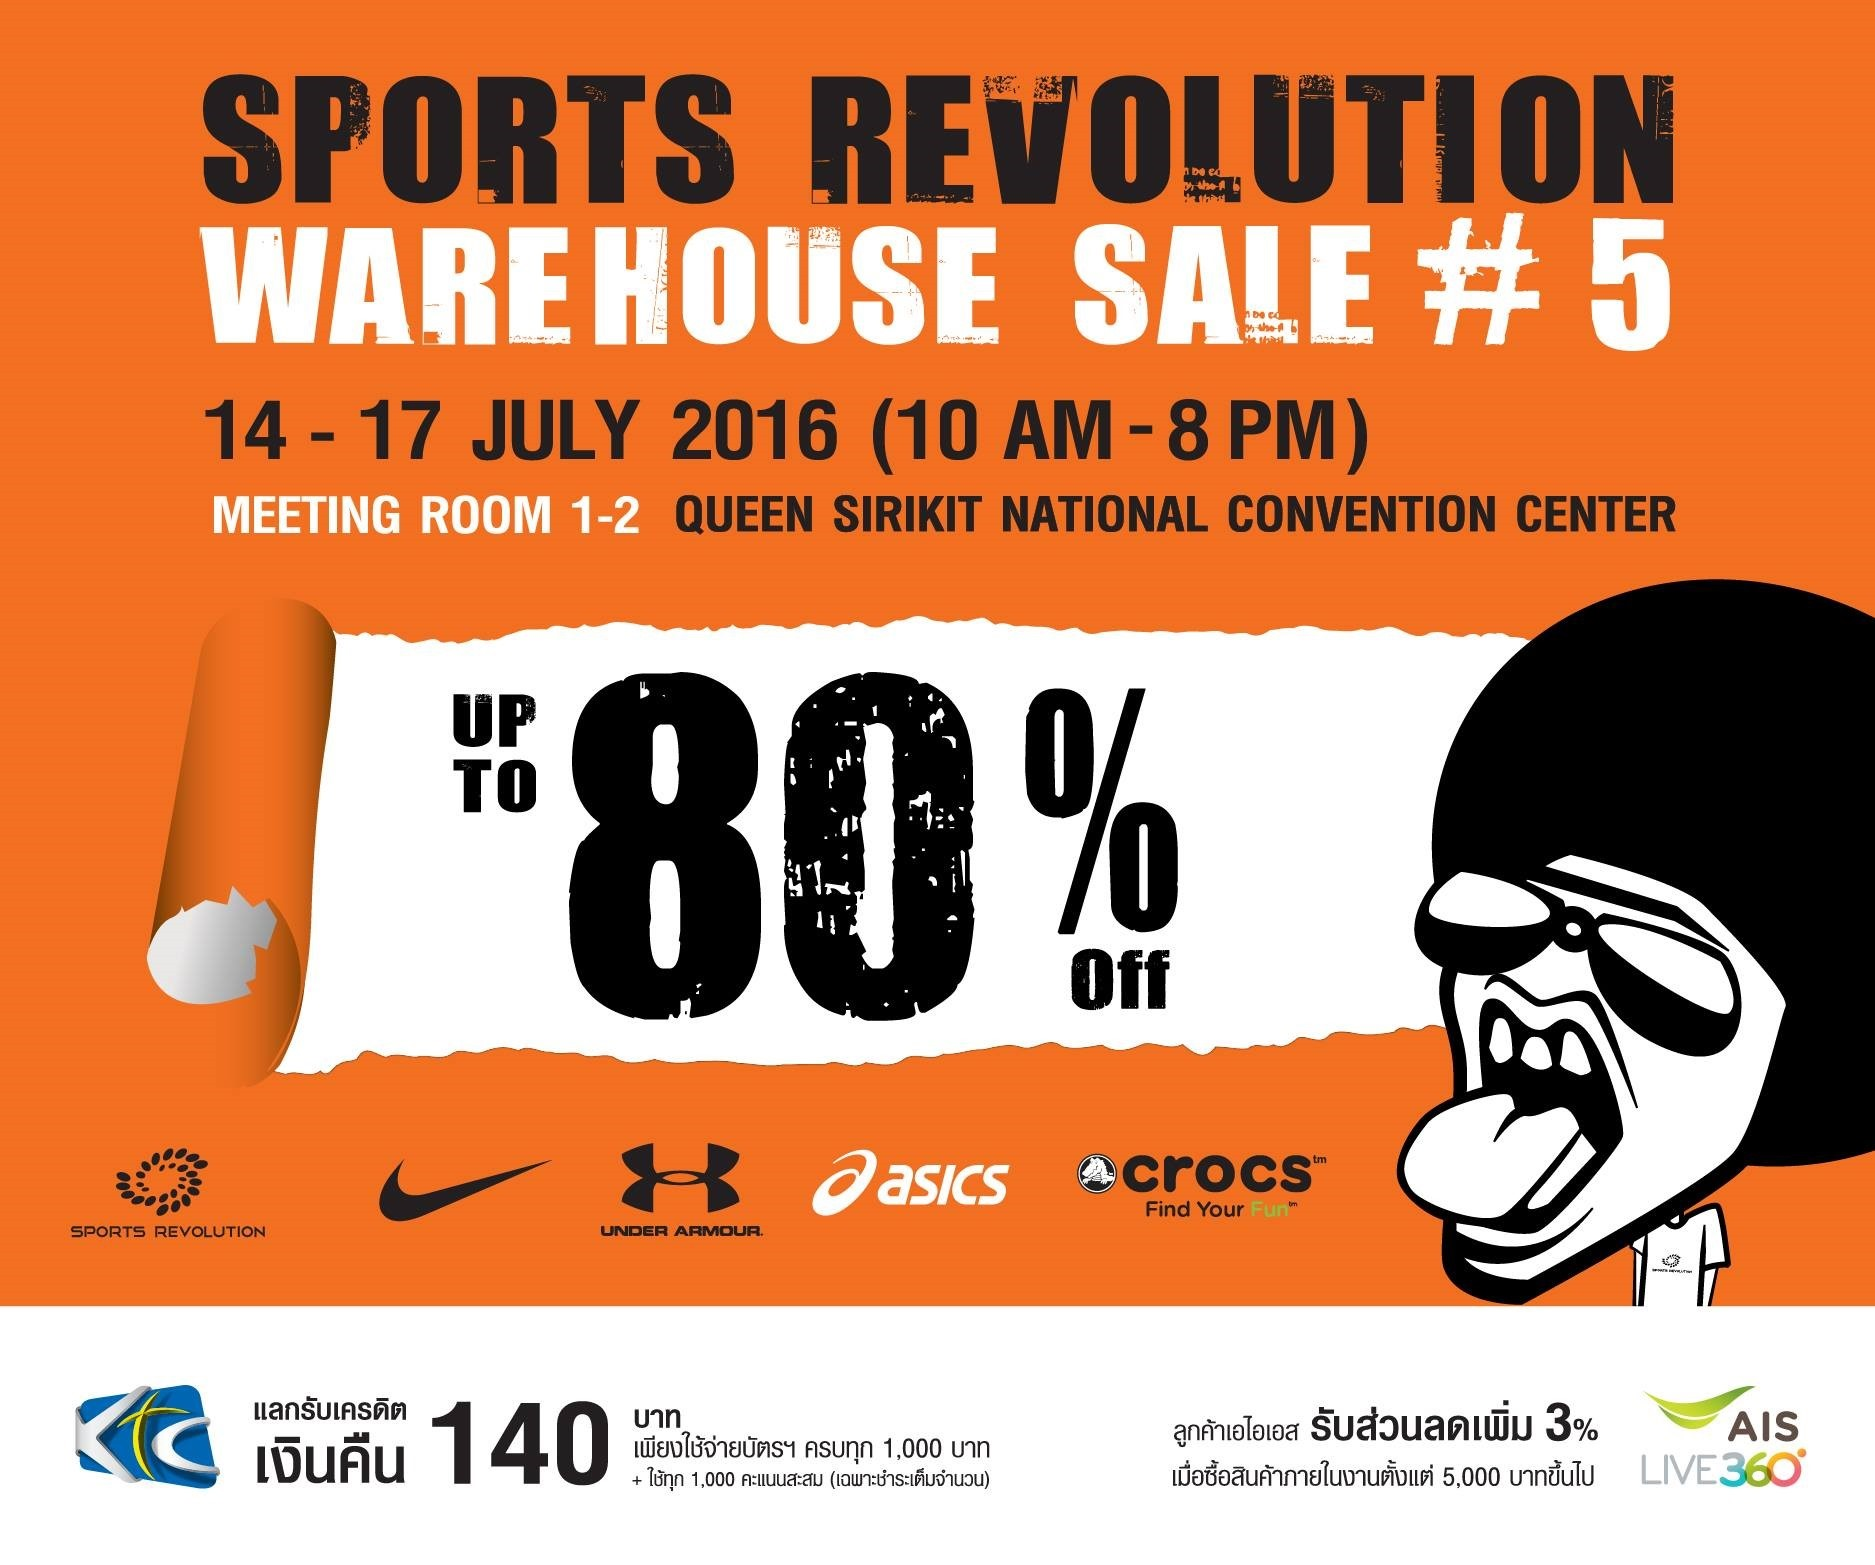 Promotion Sports Revolution Warehouse Sale #5 Nike, Under Armour, ASICS, Crocs Sale up to 80% Off [July.2016]